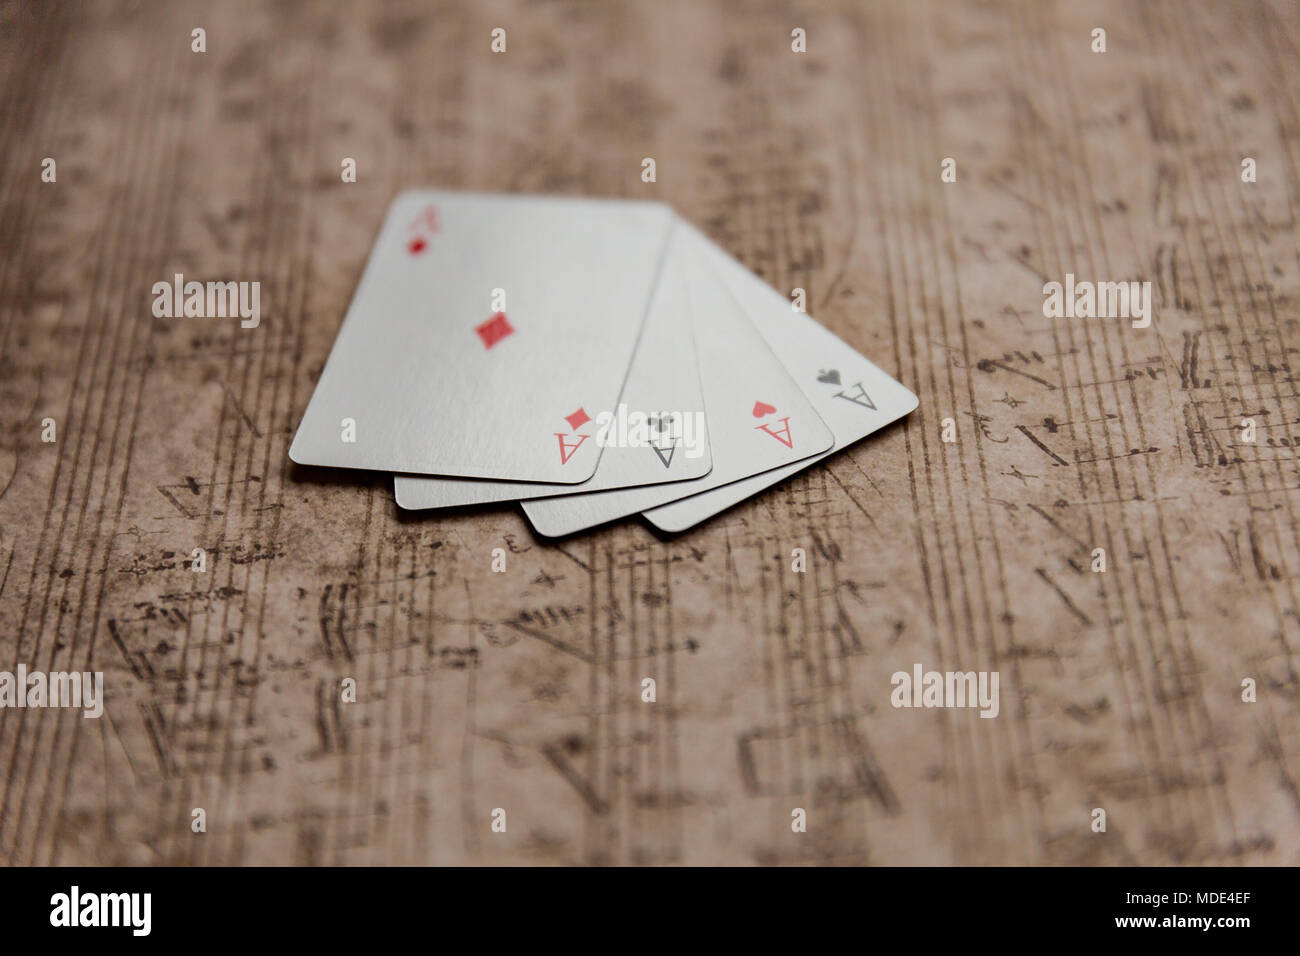 Four aces playing cards on an old musical sheet - Stock Image